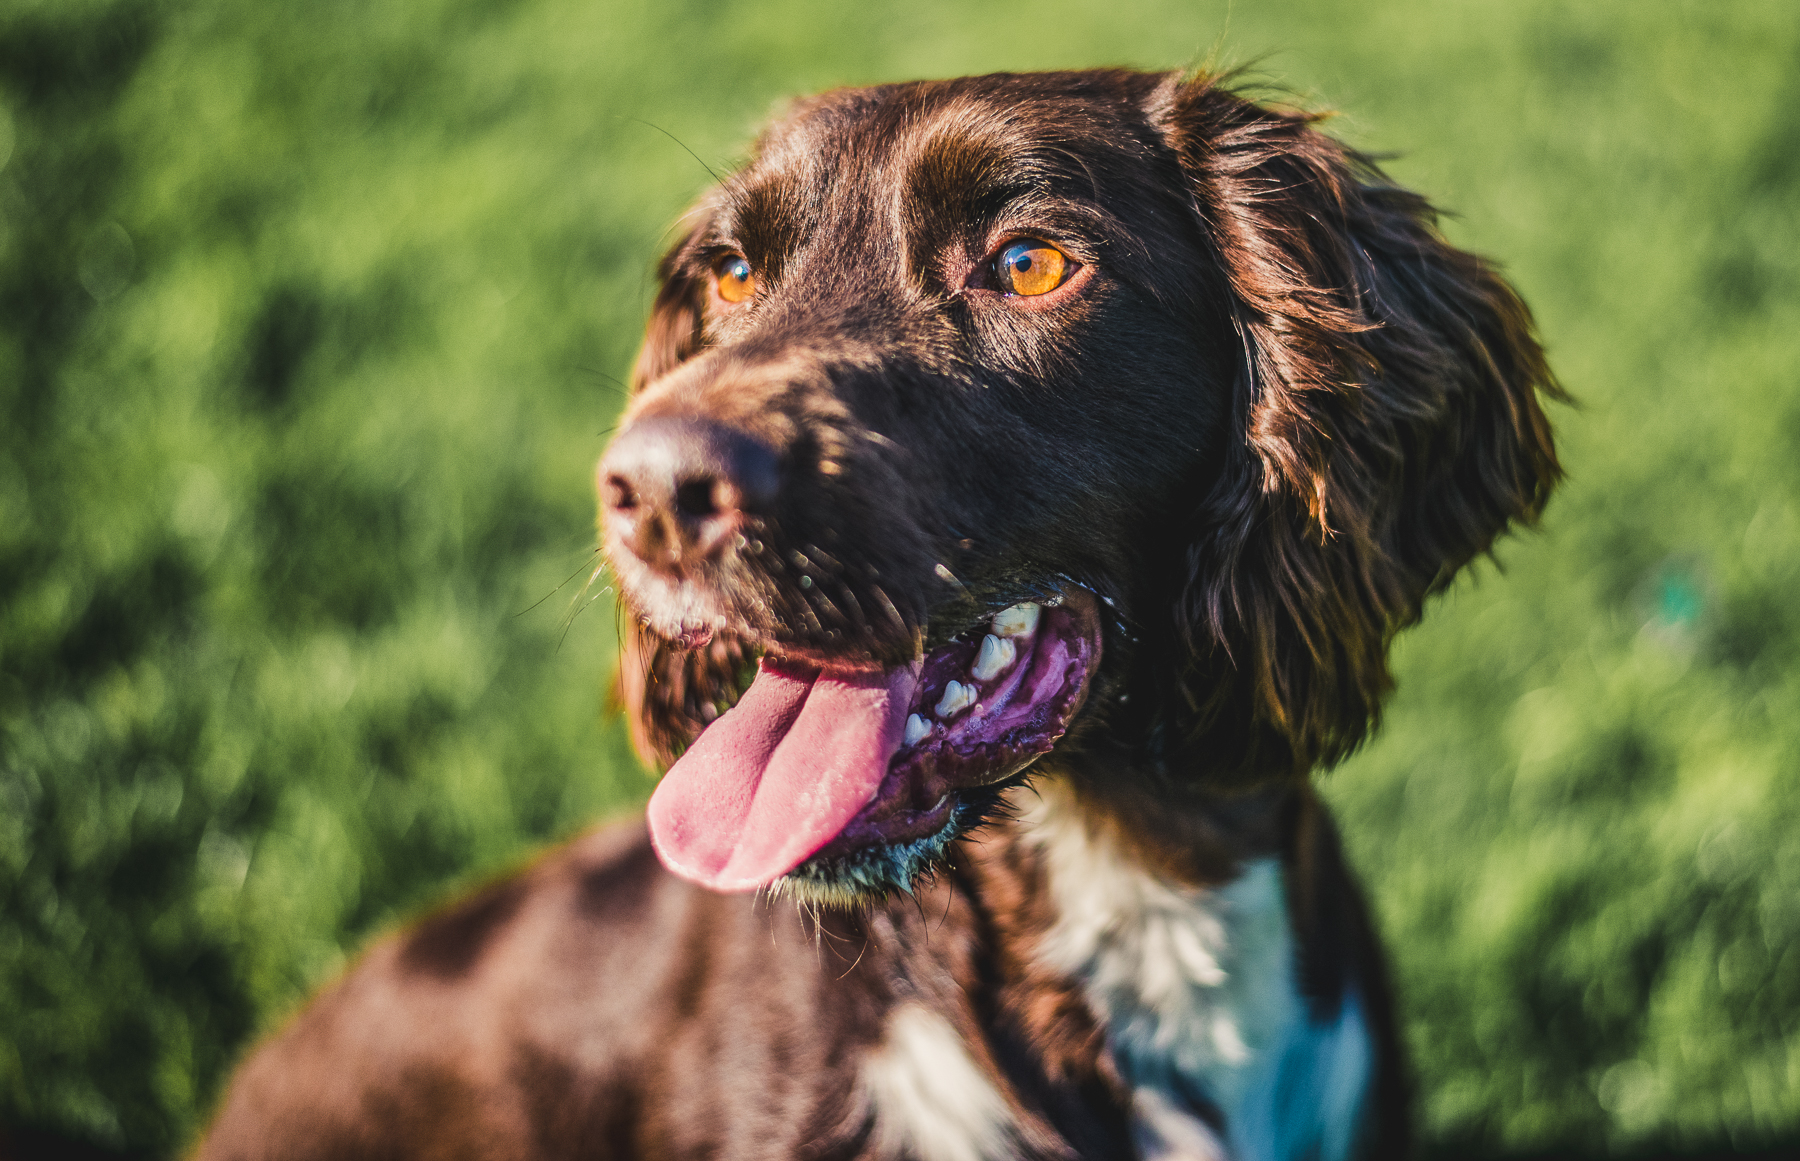 Close up of brown and white spaniel in a green field